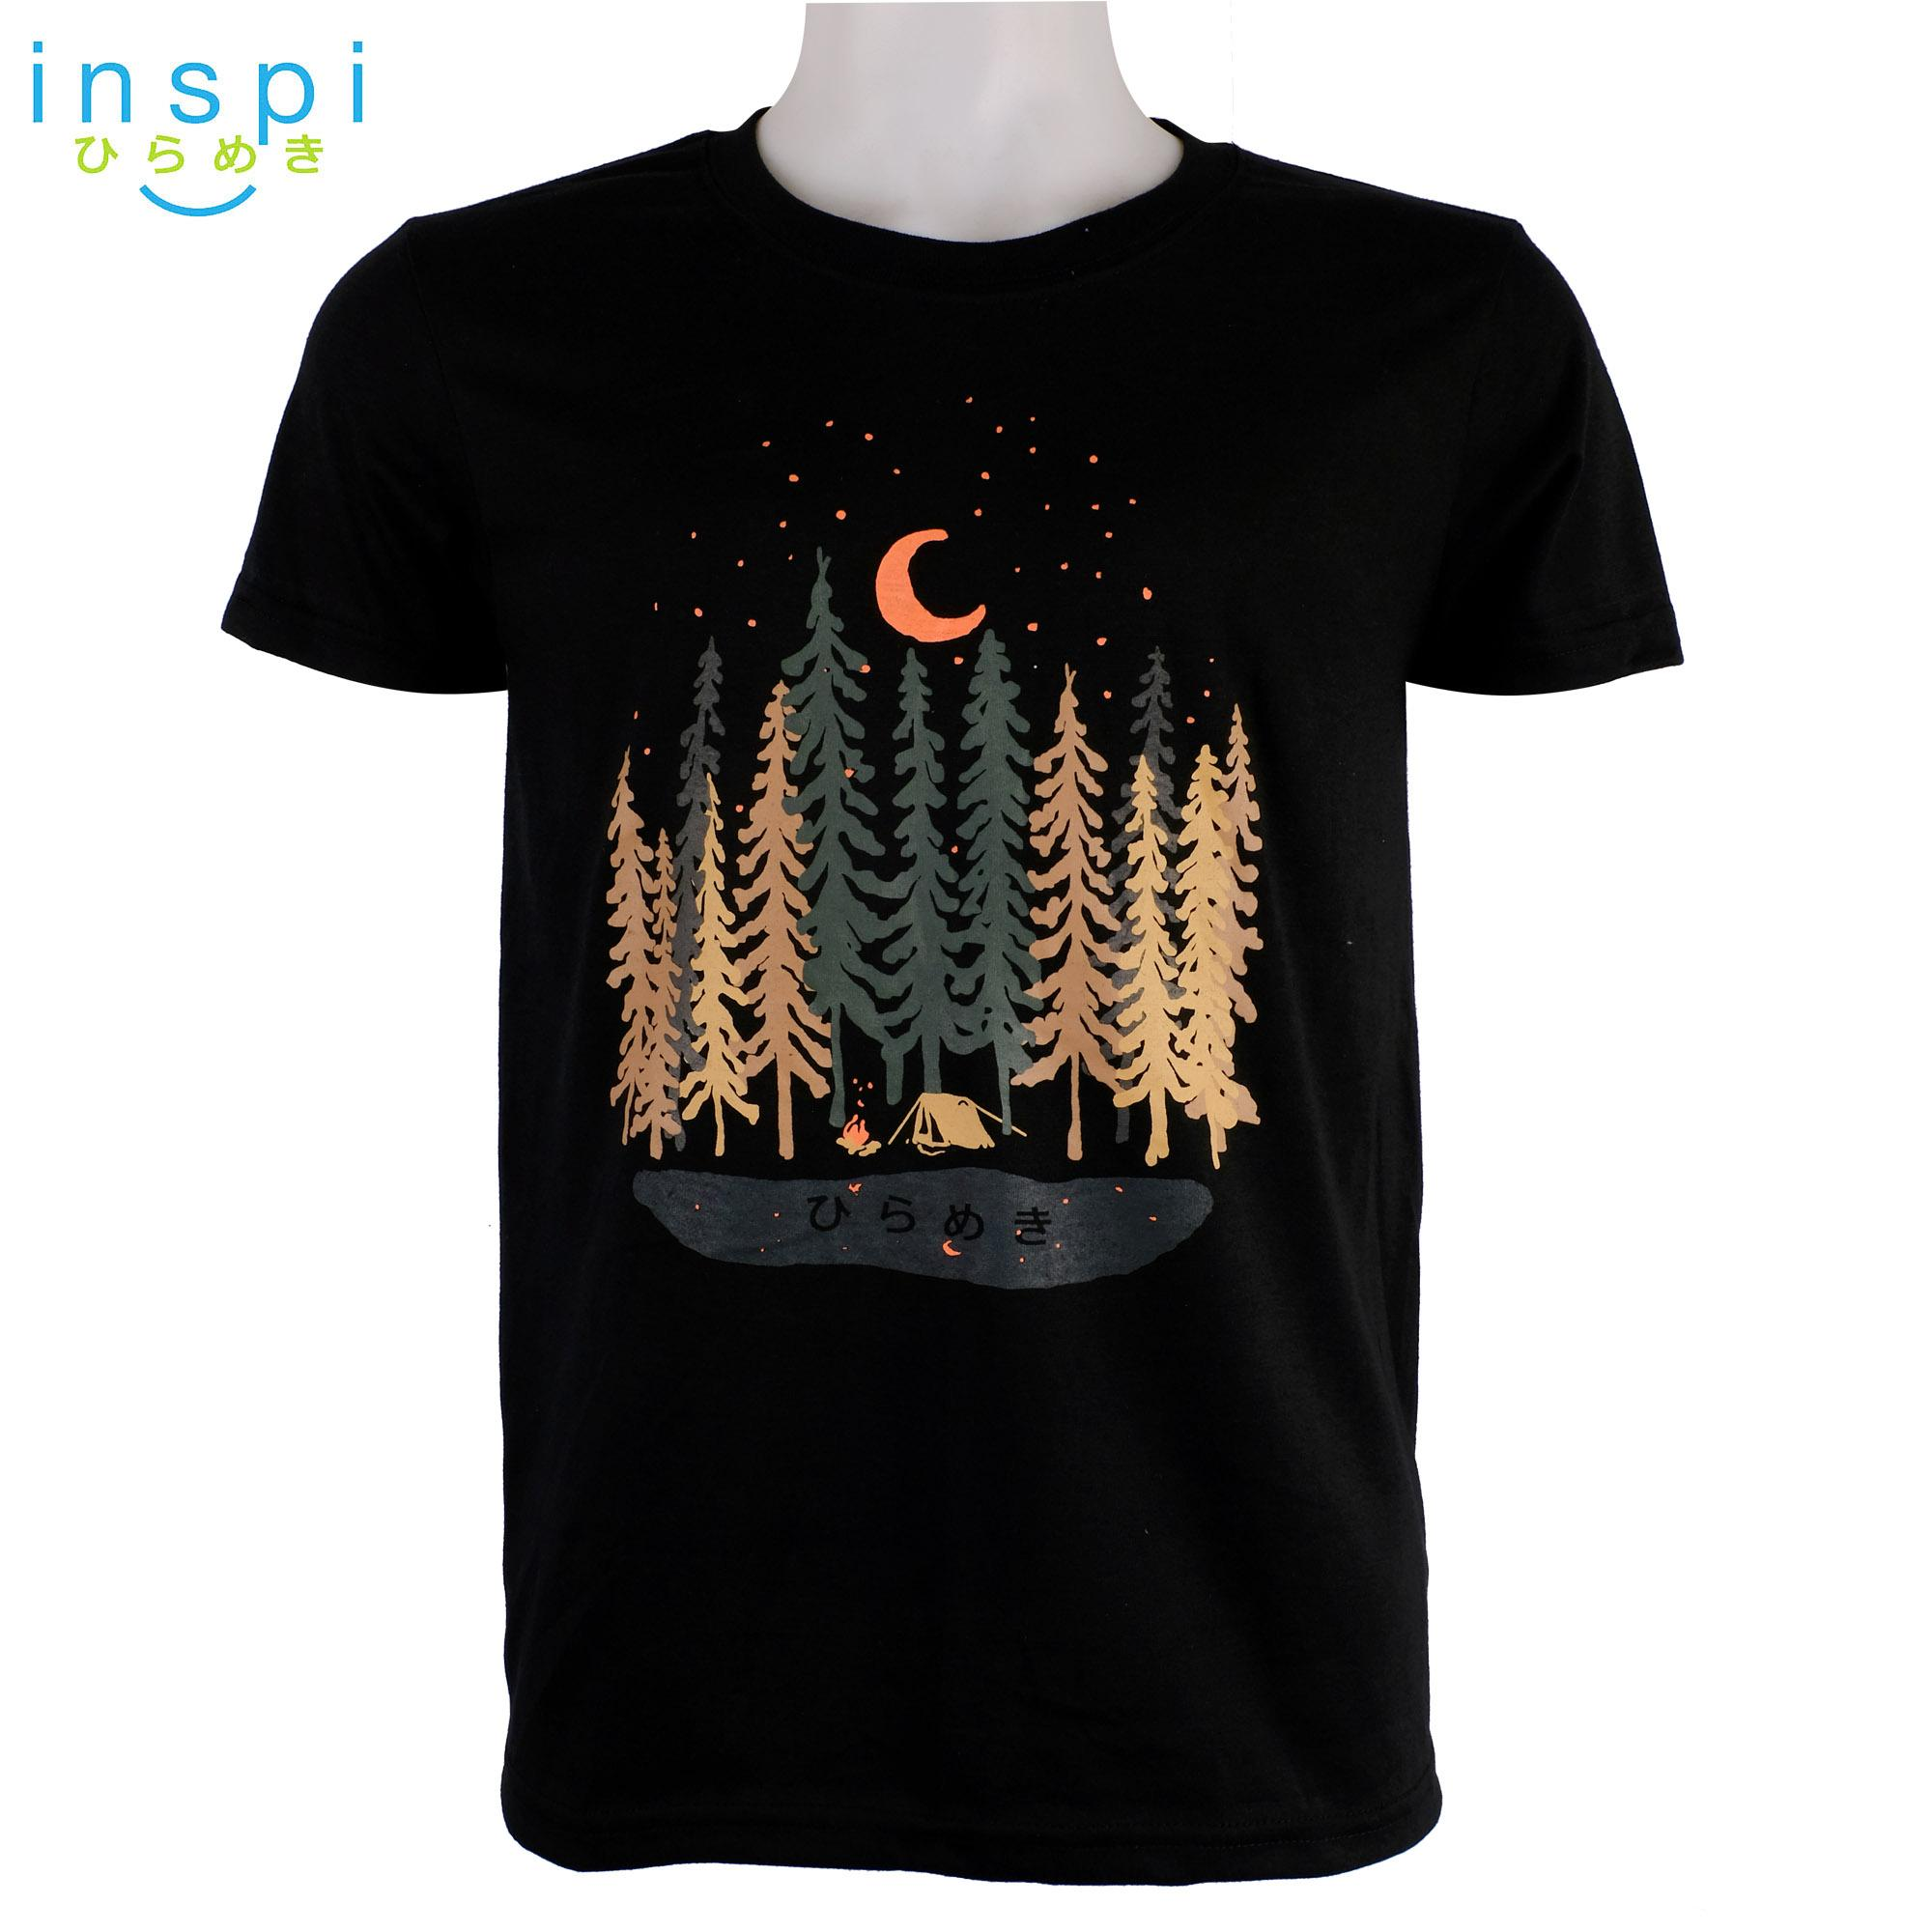 e2e265fc0f5 INSPI Tees Camping Forest (Black) tshirt printed graphic tee Mens t shirt  shirts for